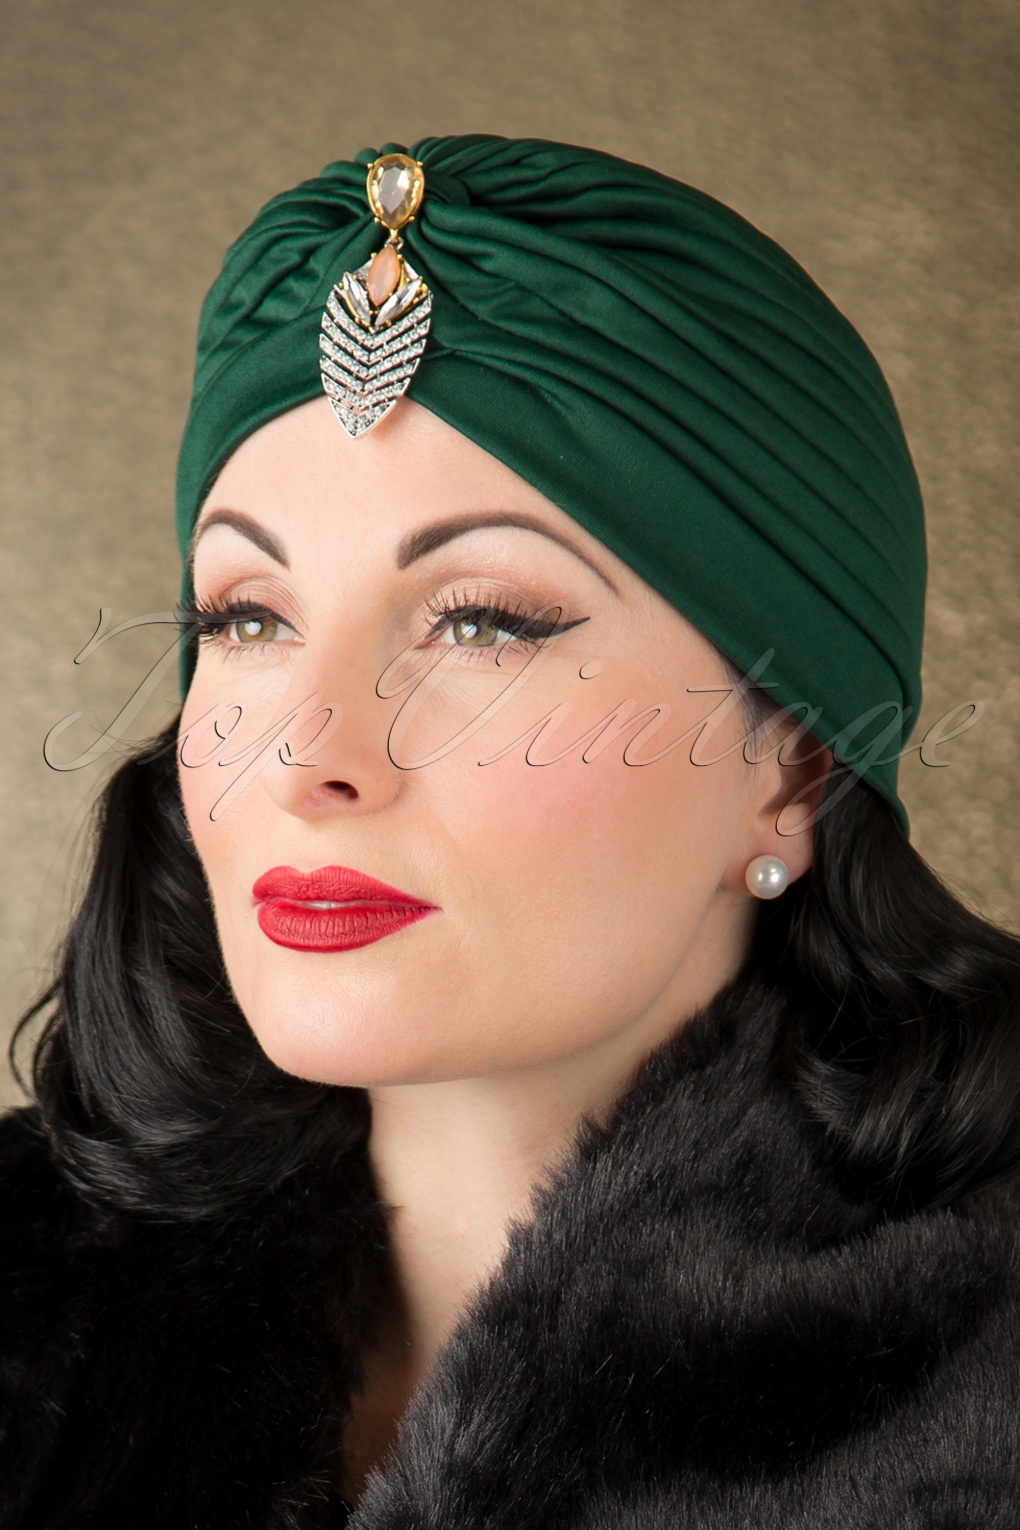 Vintage Hair Accessories: Combs, Headbands, Flowers, Scarf, Wigs 50s Sally Sateen Turban Hat in Green £7.99 AT vintagedancer.com